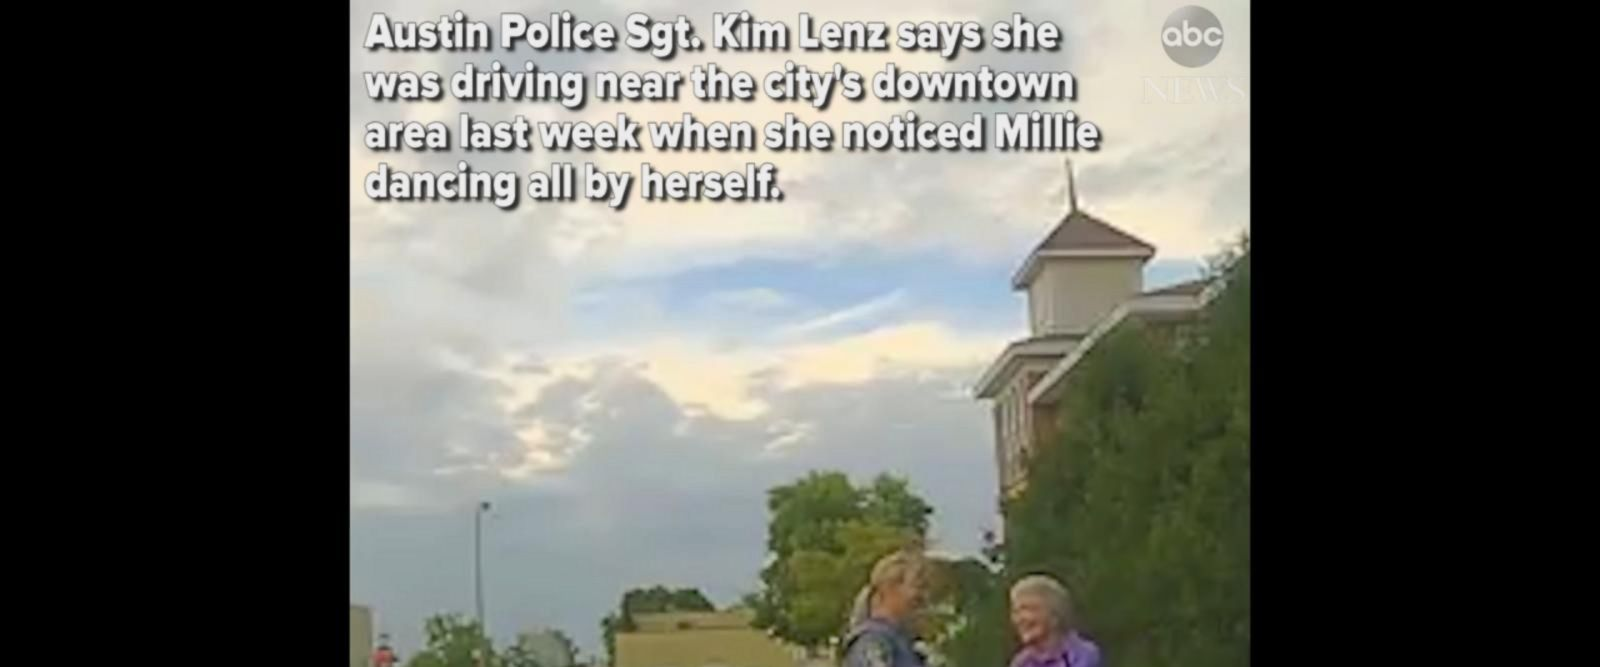 VIDEO: Minnesota police officer gets out of squad car to dance with 92-year-old